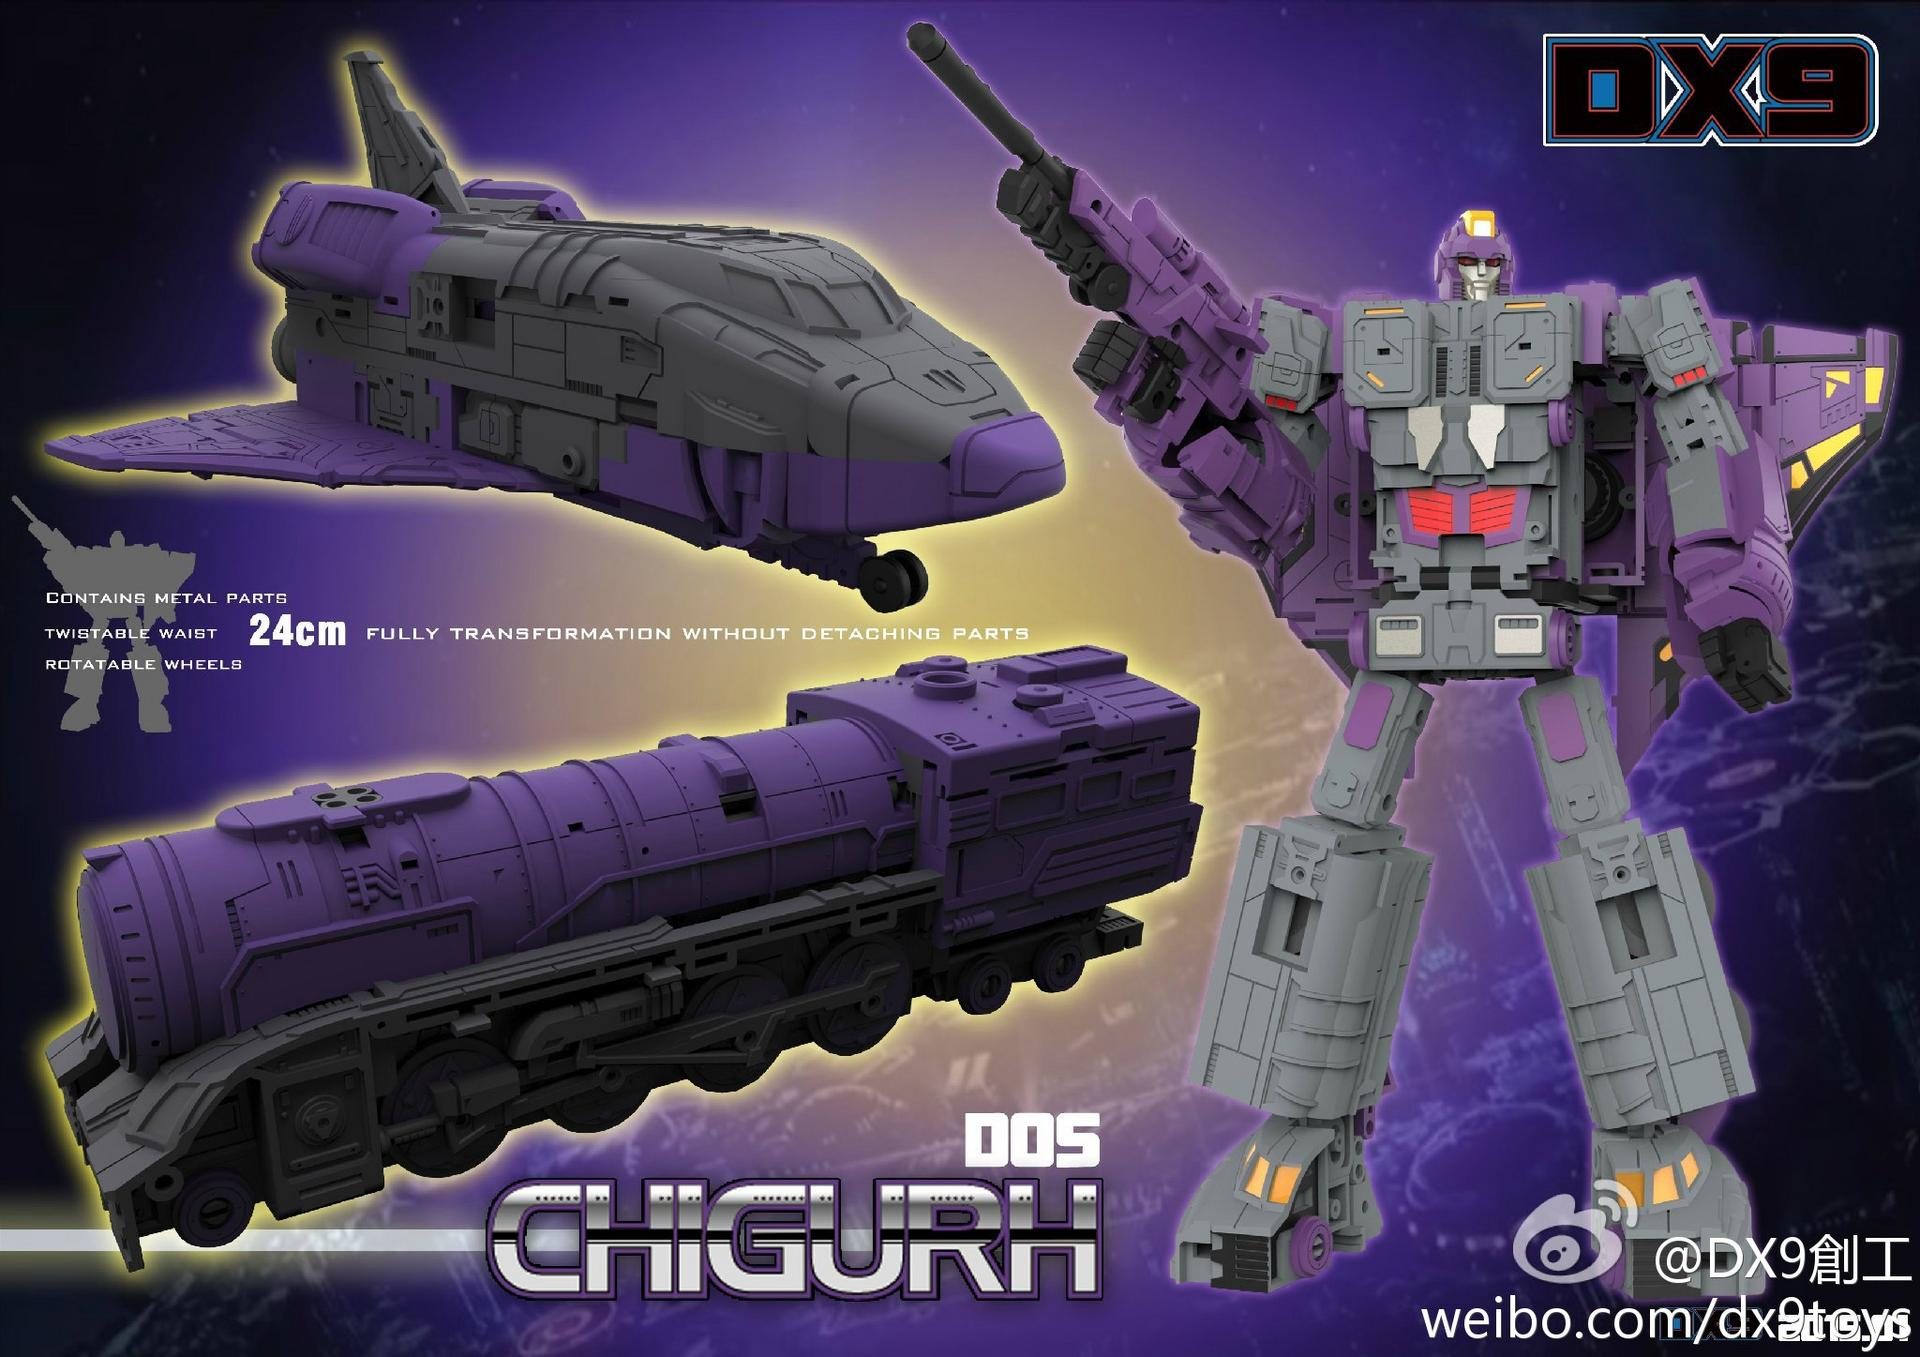 DX9 Toys D05 Chigurh (Leader/MP Astrotrain) | TFW2005 ...